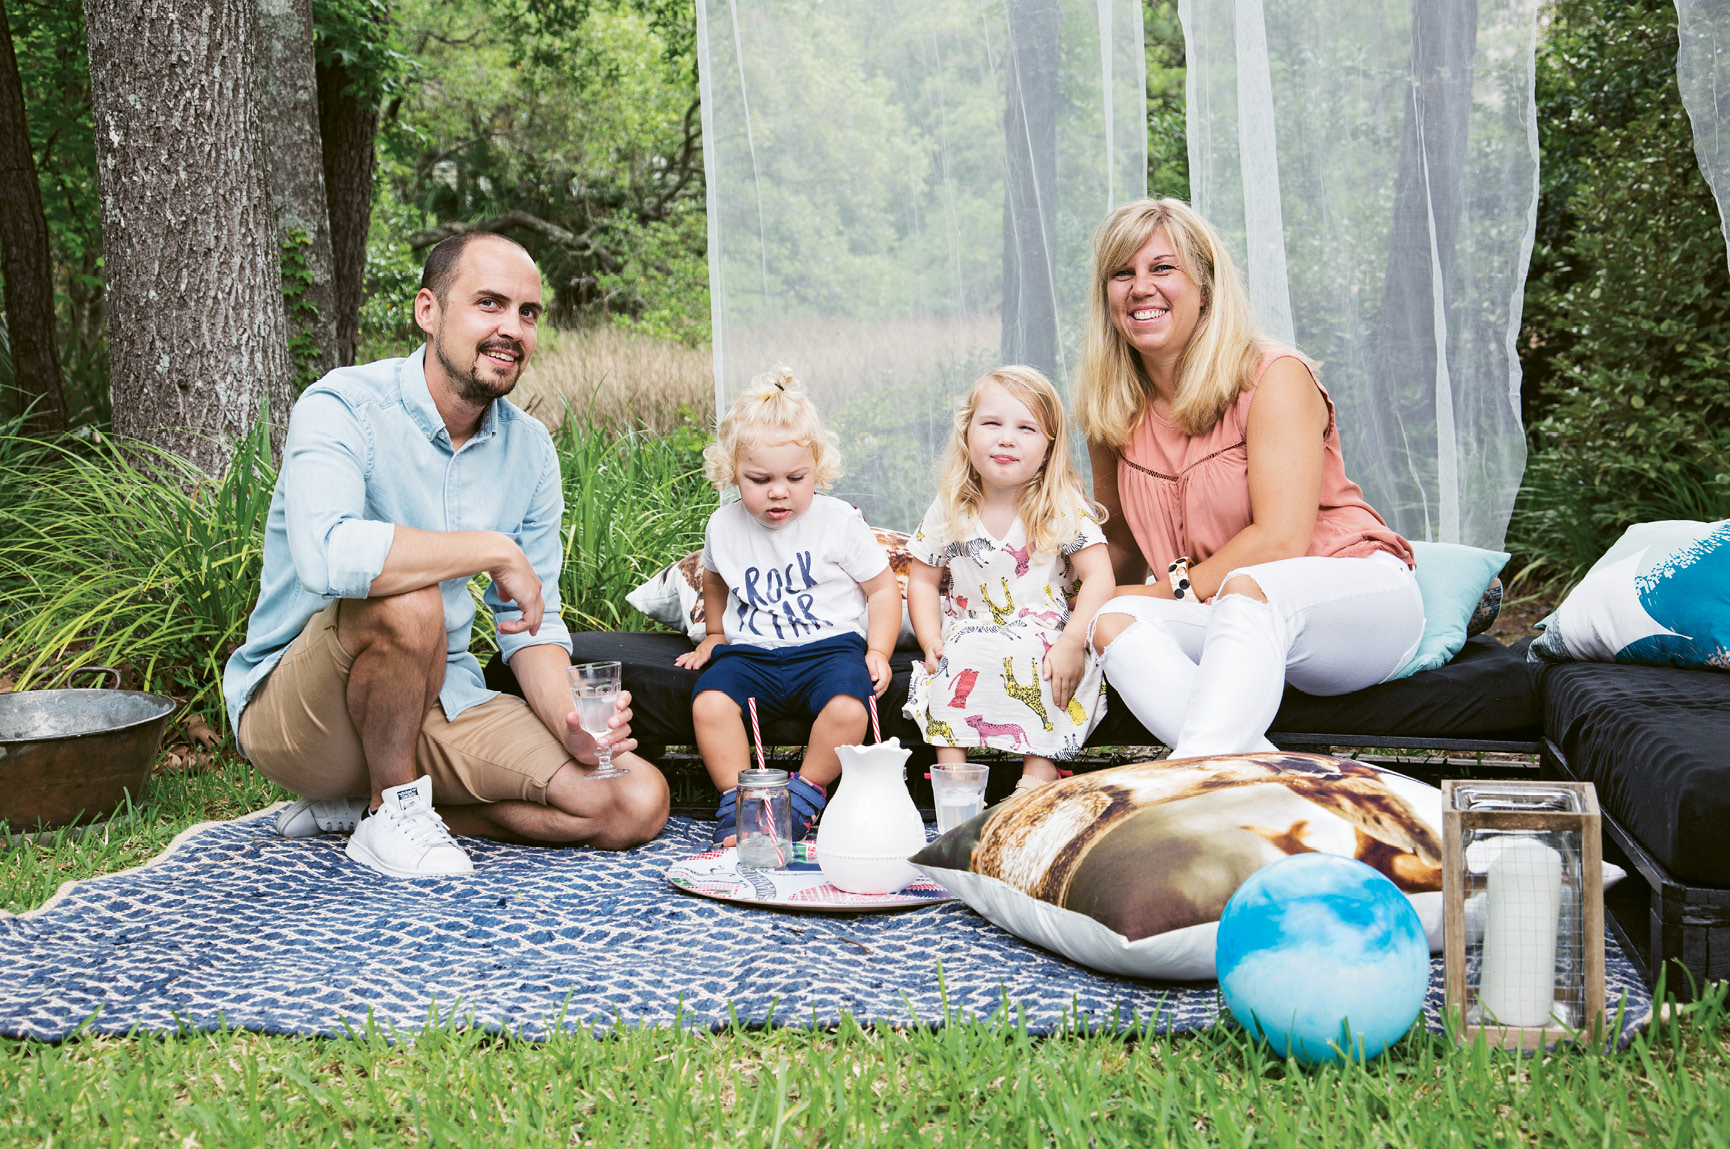 FAMILY TIME: Jacob and Therese Lenberg picnic with their children in their Hobcaw Creek backyard. The Swedish couple's abode is chock-full of Scandinavian style, beginning with the entryway (left), where one clock is set to local time and another displays the hour in their hometown of Gothenburg.